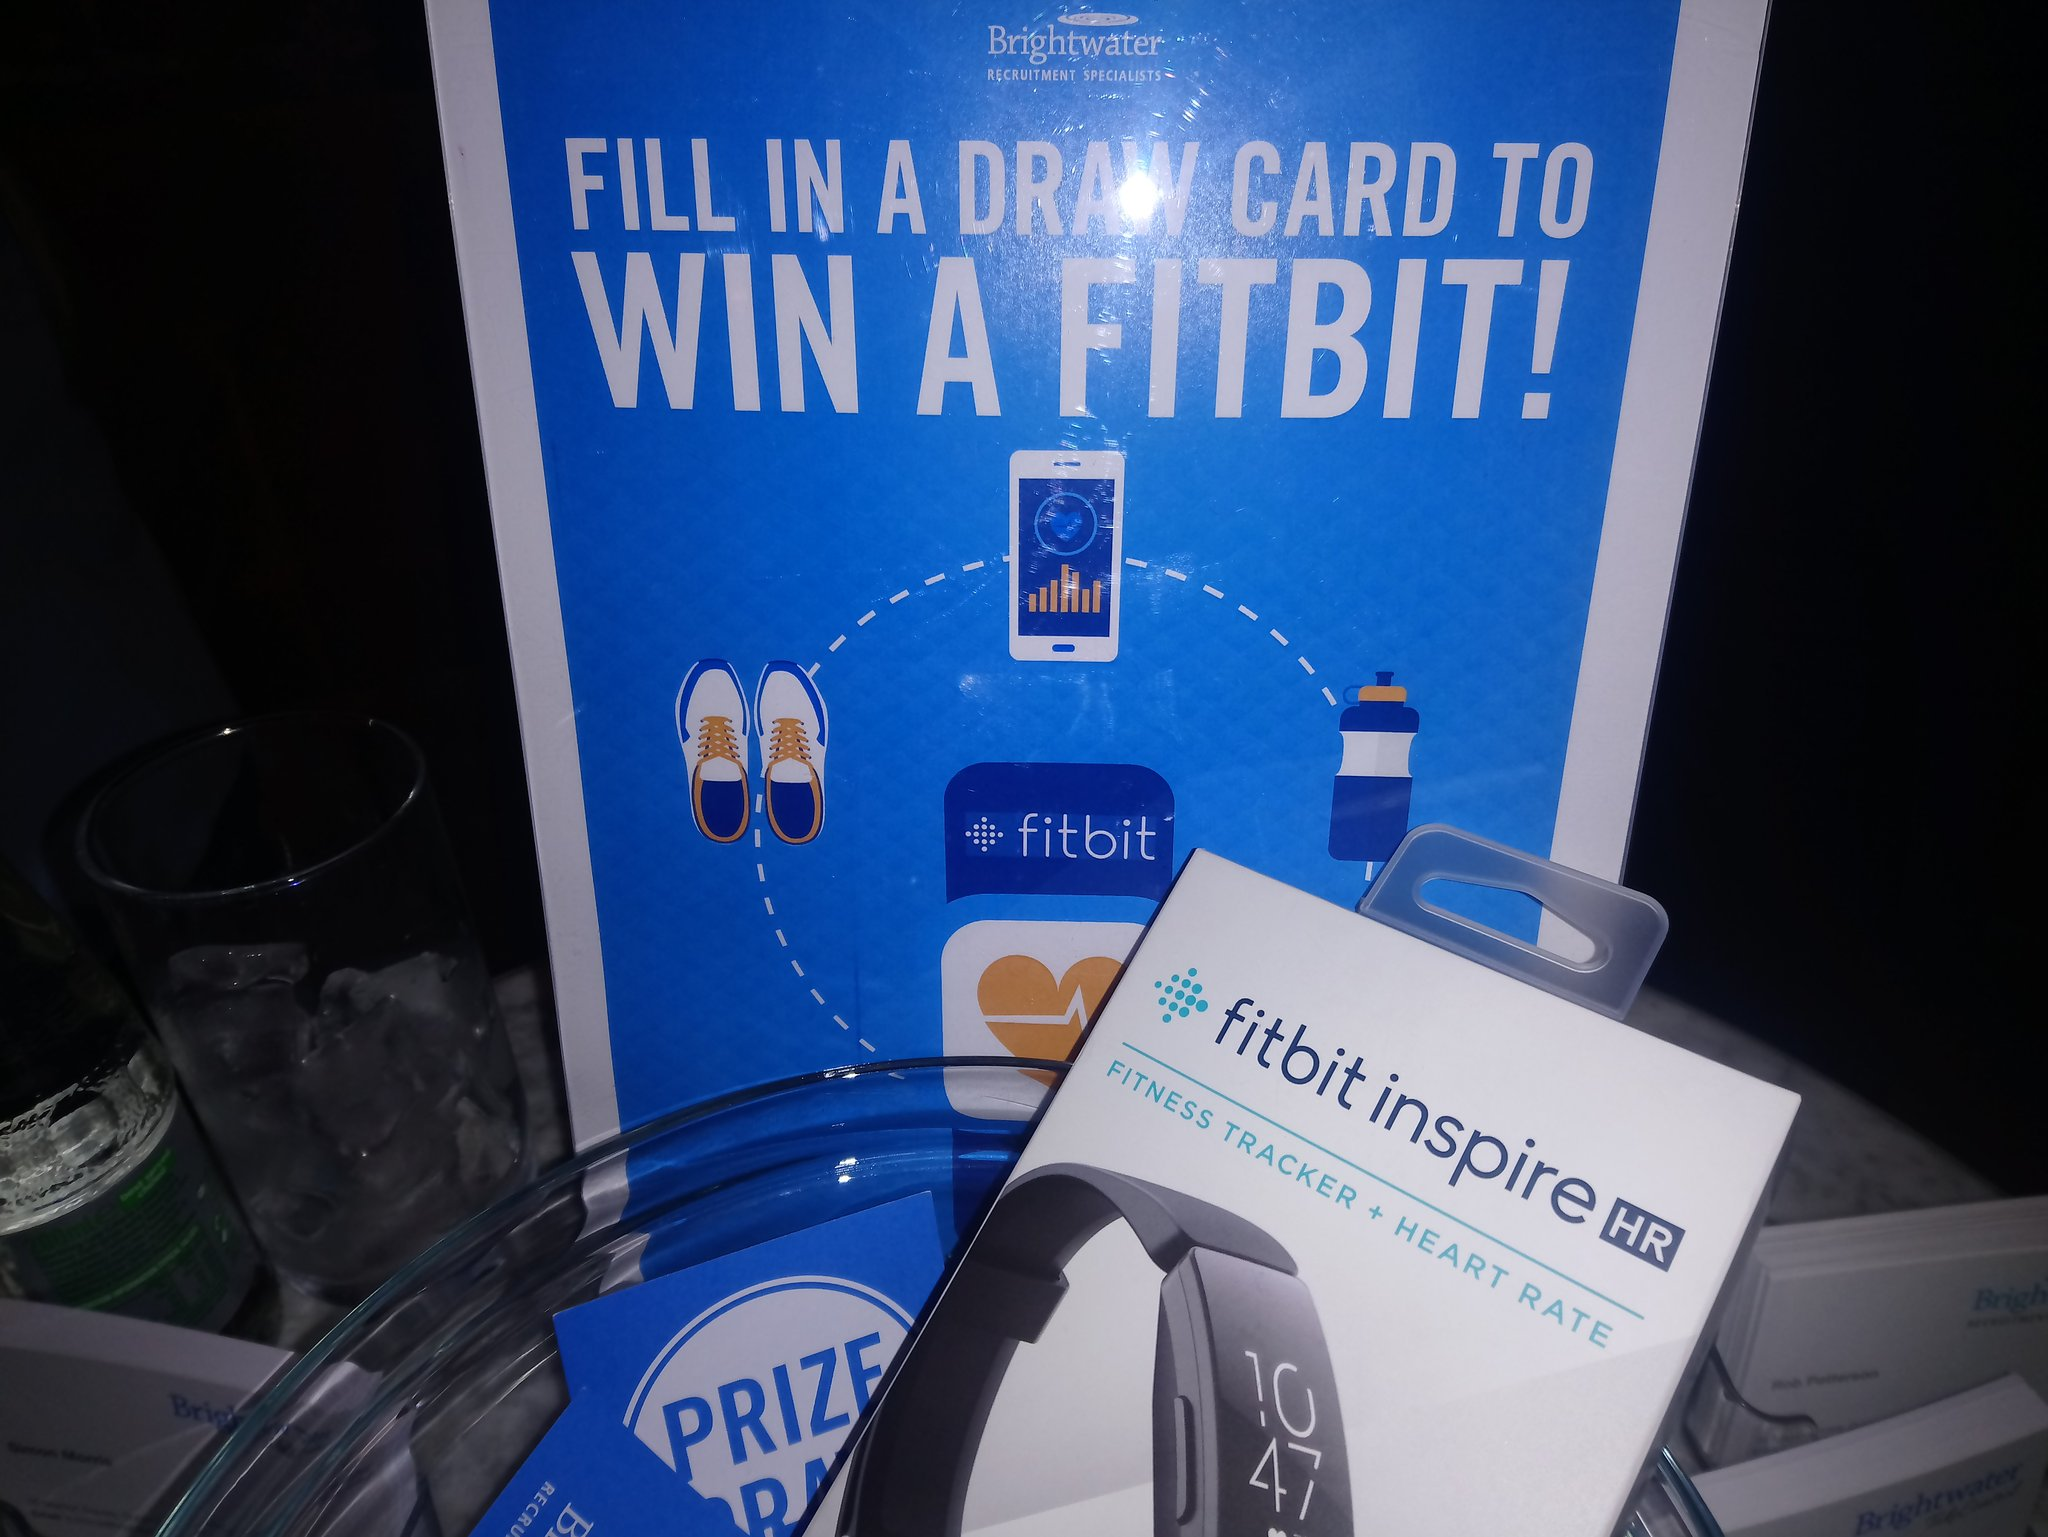 Win a FitBit Inspire in the Brightwater Prize Draw